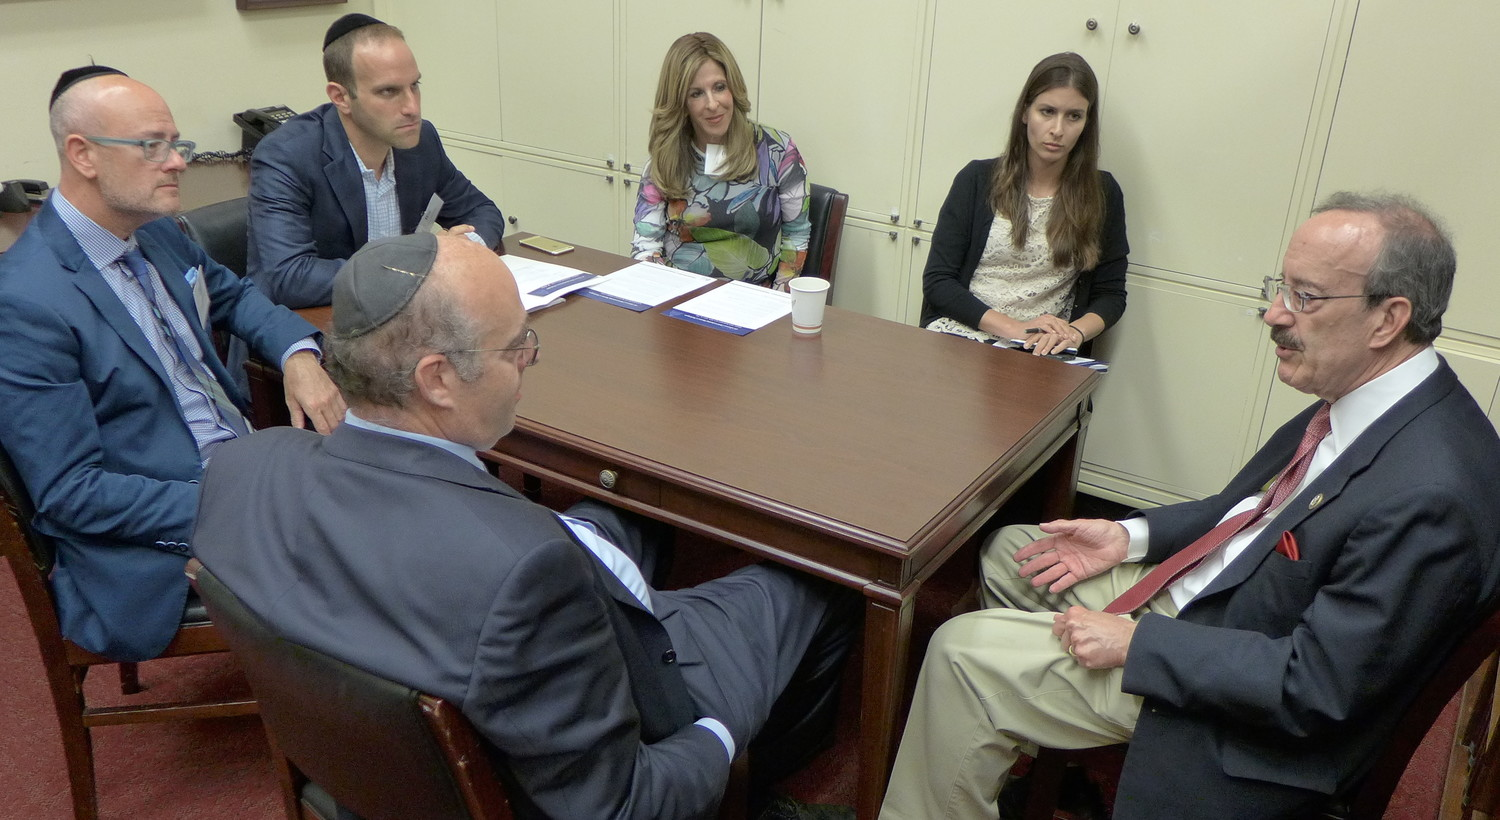 Members of the OU Advocacy leadership team meet with Rep. Eliot Engel (D-NY)